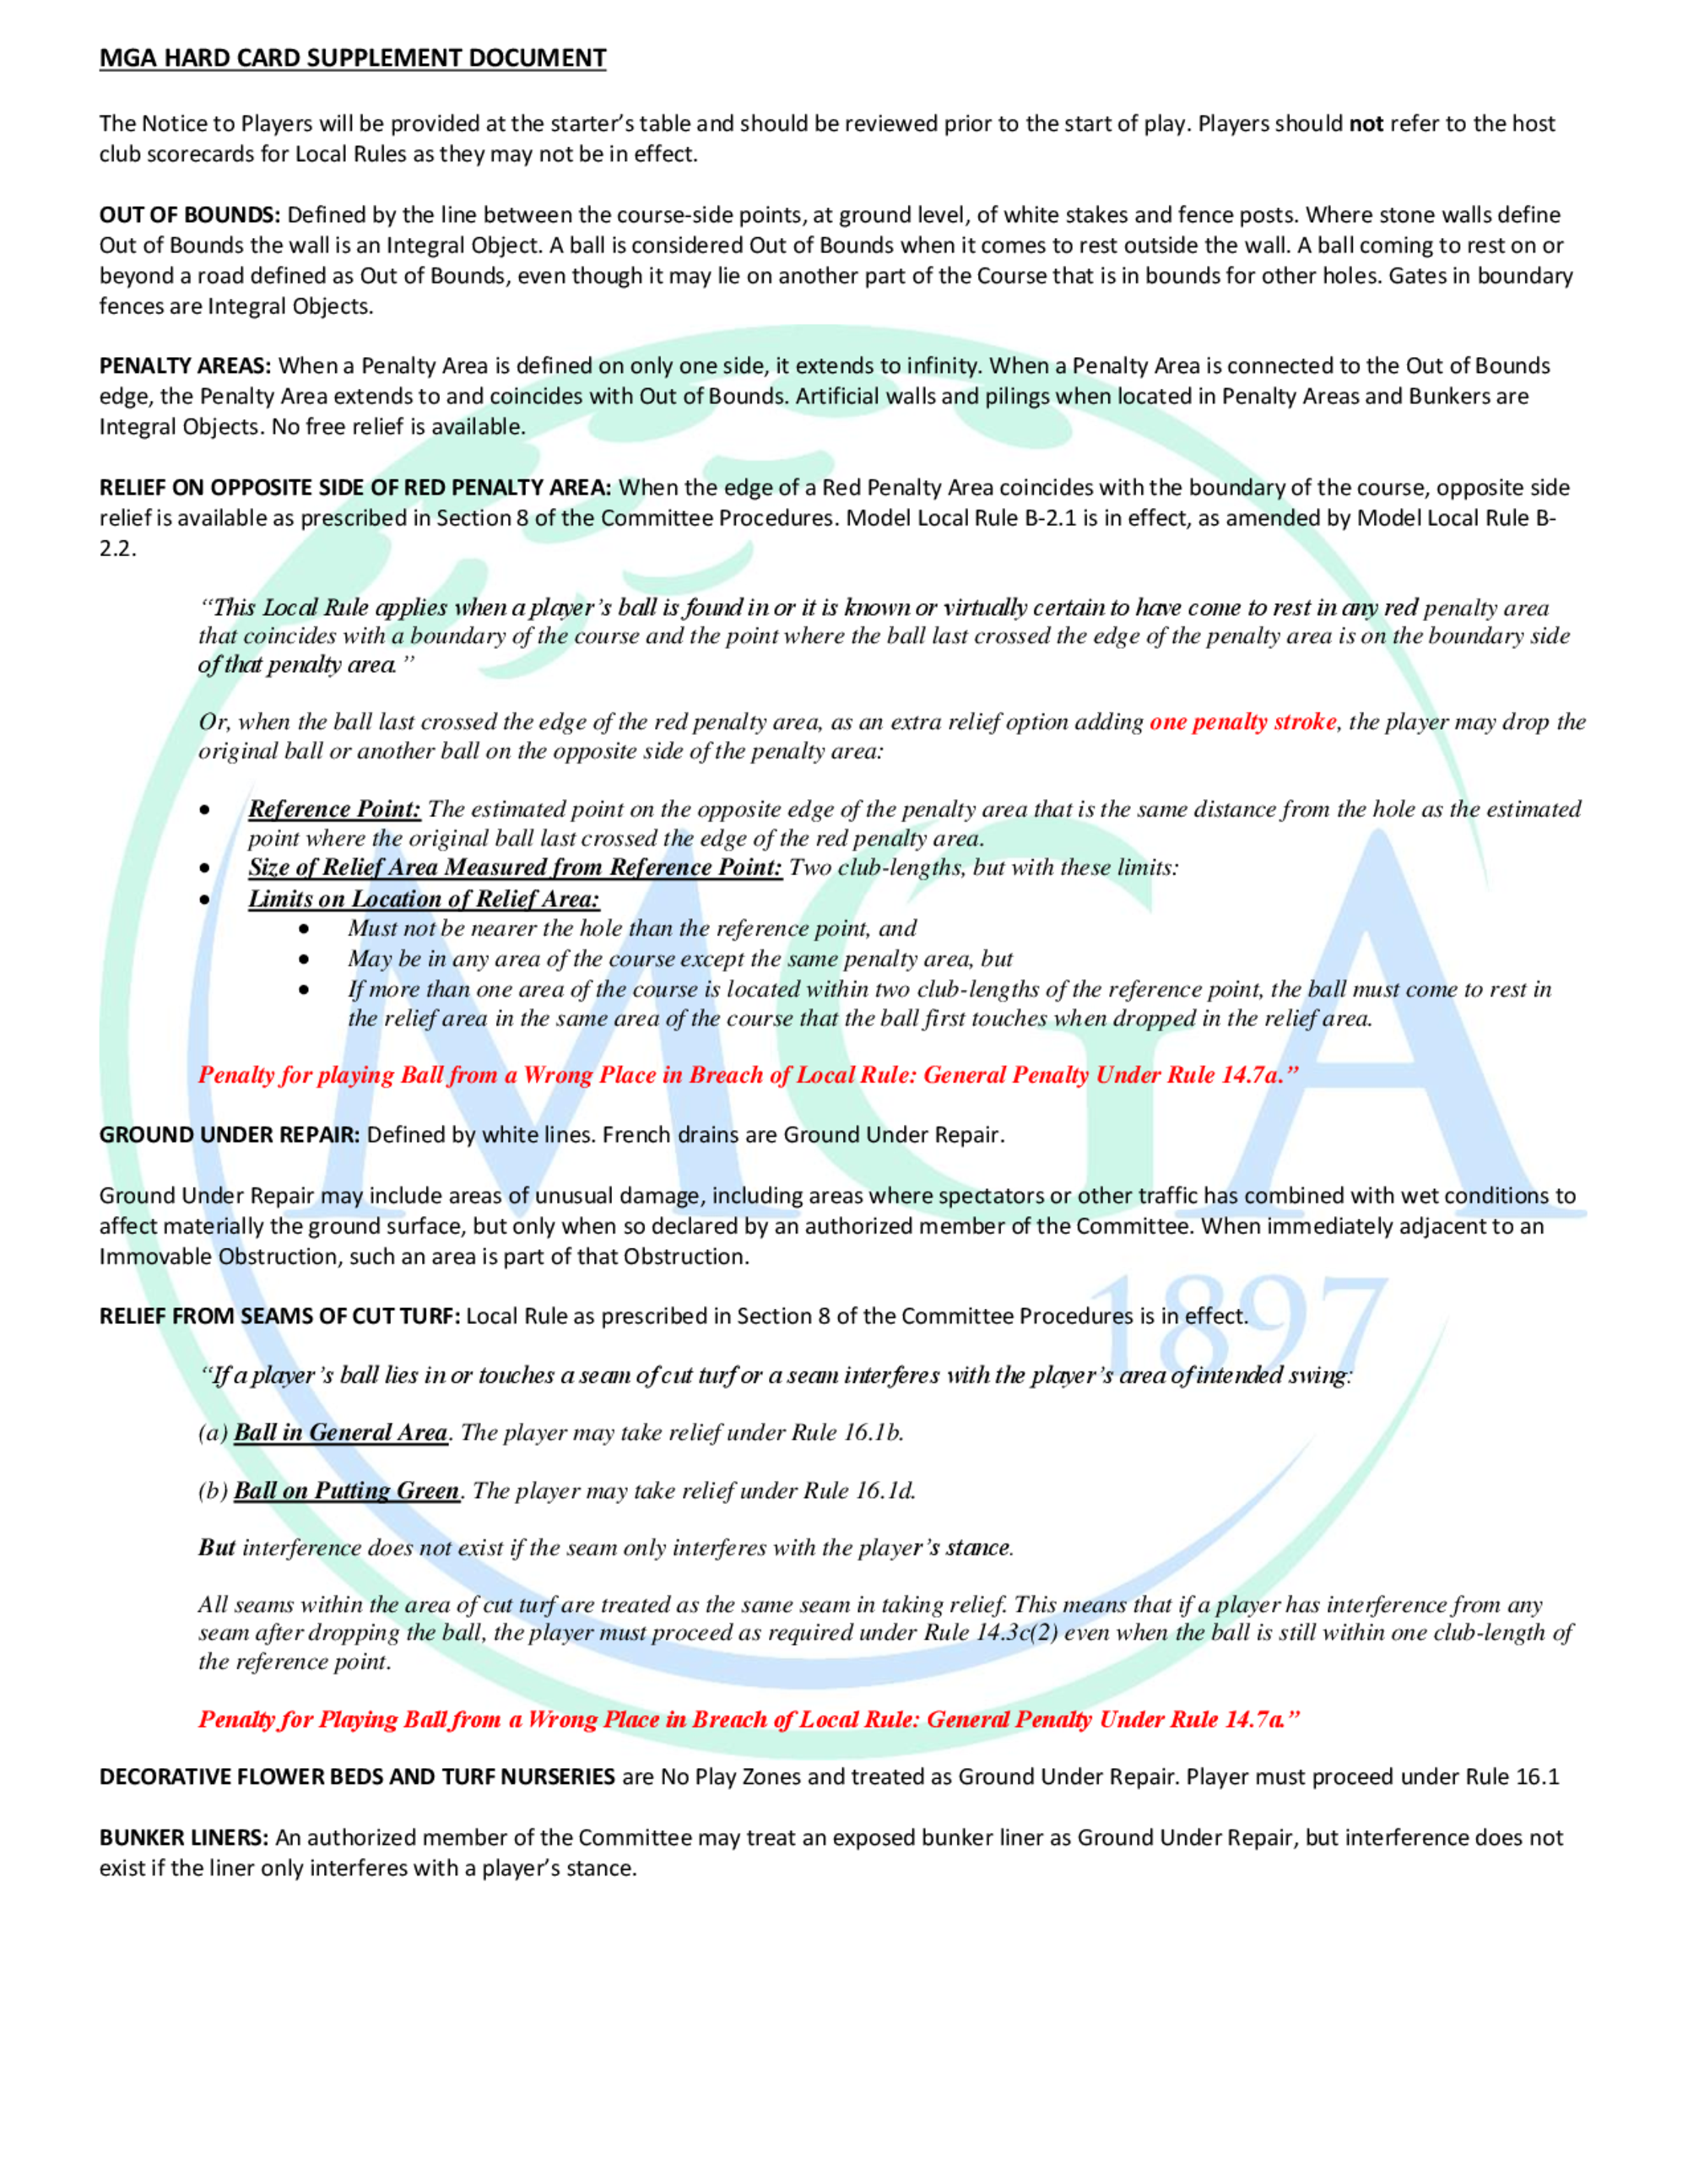 Mga hard card supplement document  1